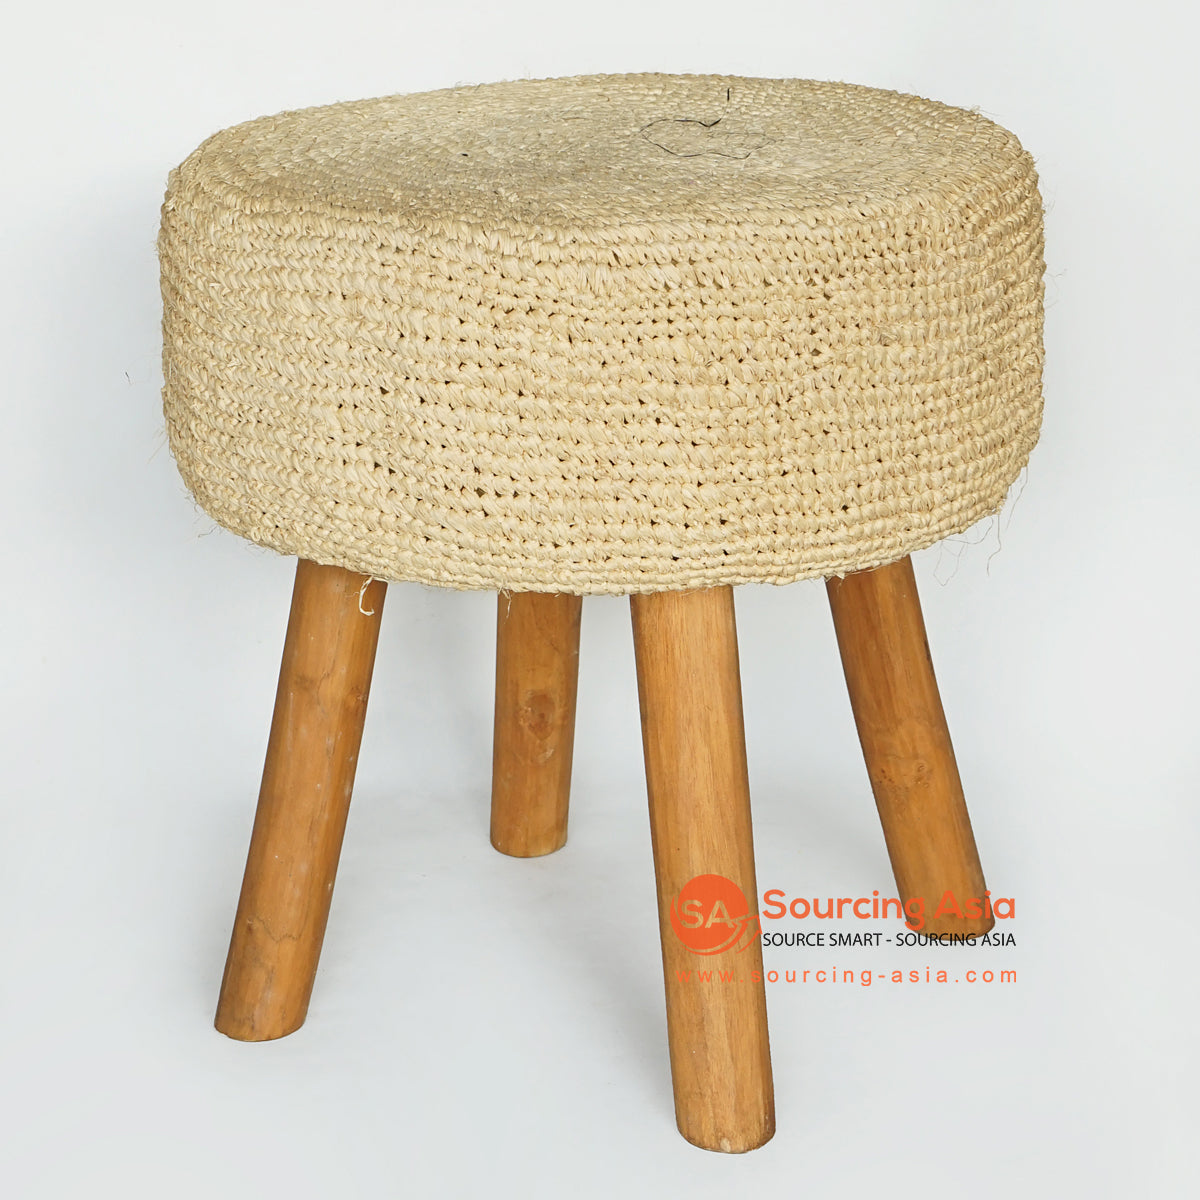 MRC159 NATURAL WOODEN ROUND STOOL WITH CREAM RAFFIA SEAT